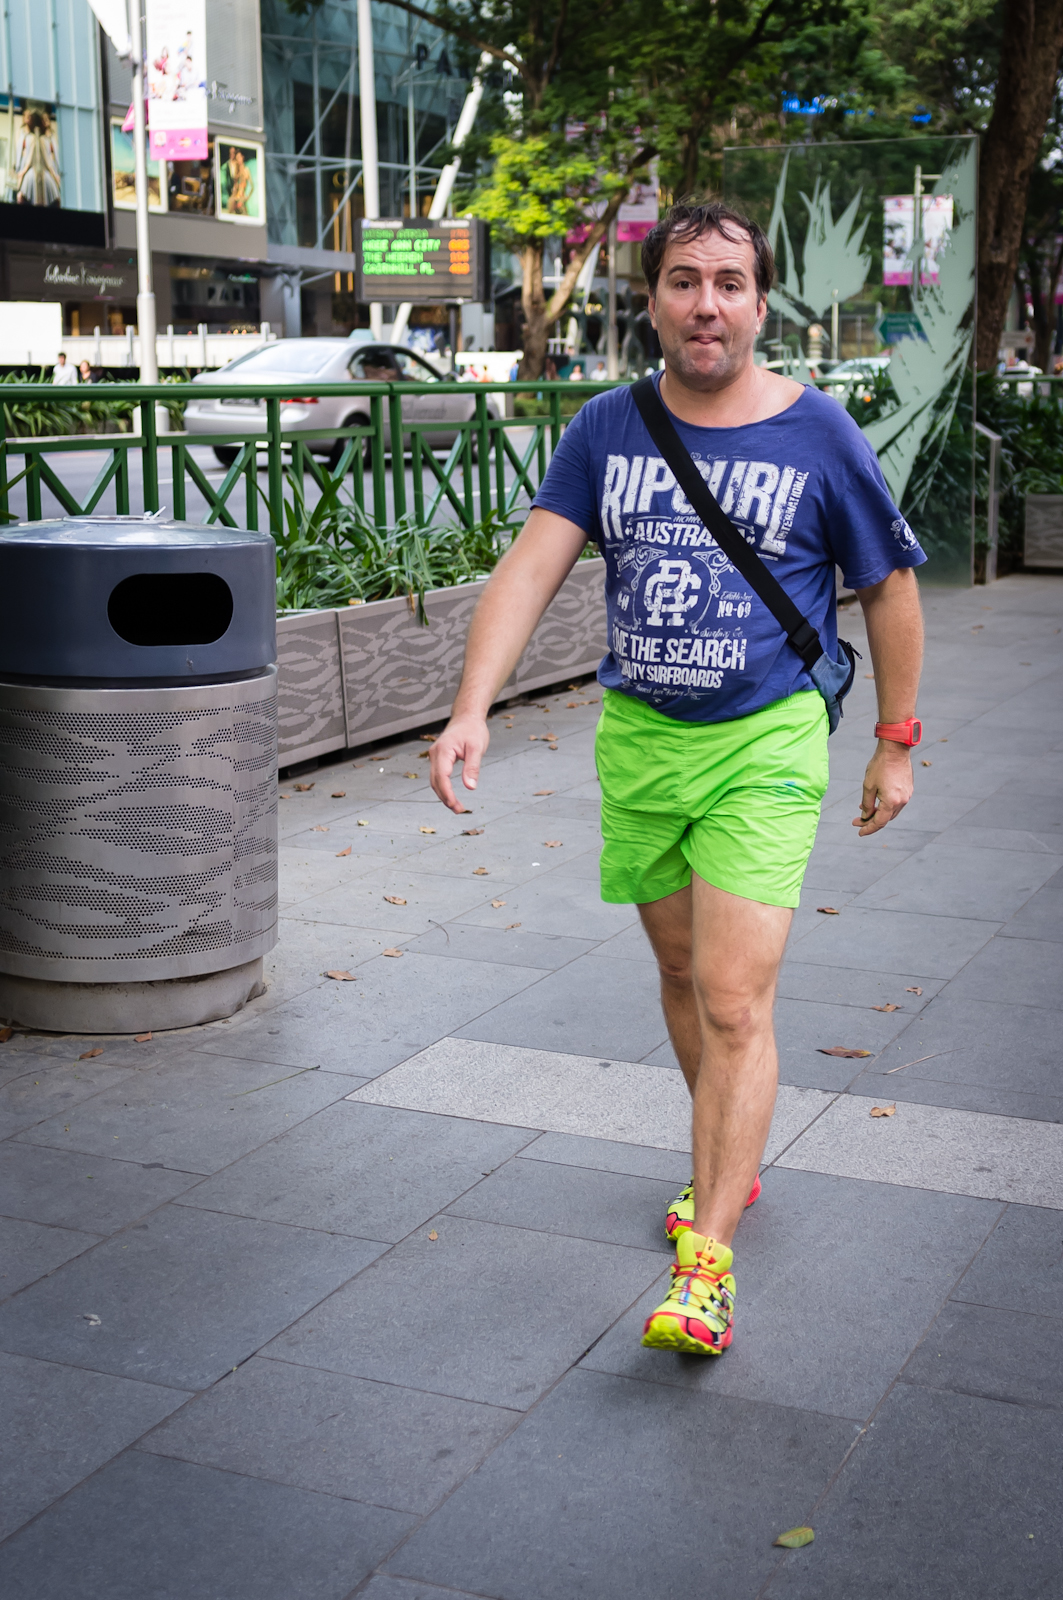 Street photography - Tourist in blue top, green shorts and yellow shoes